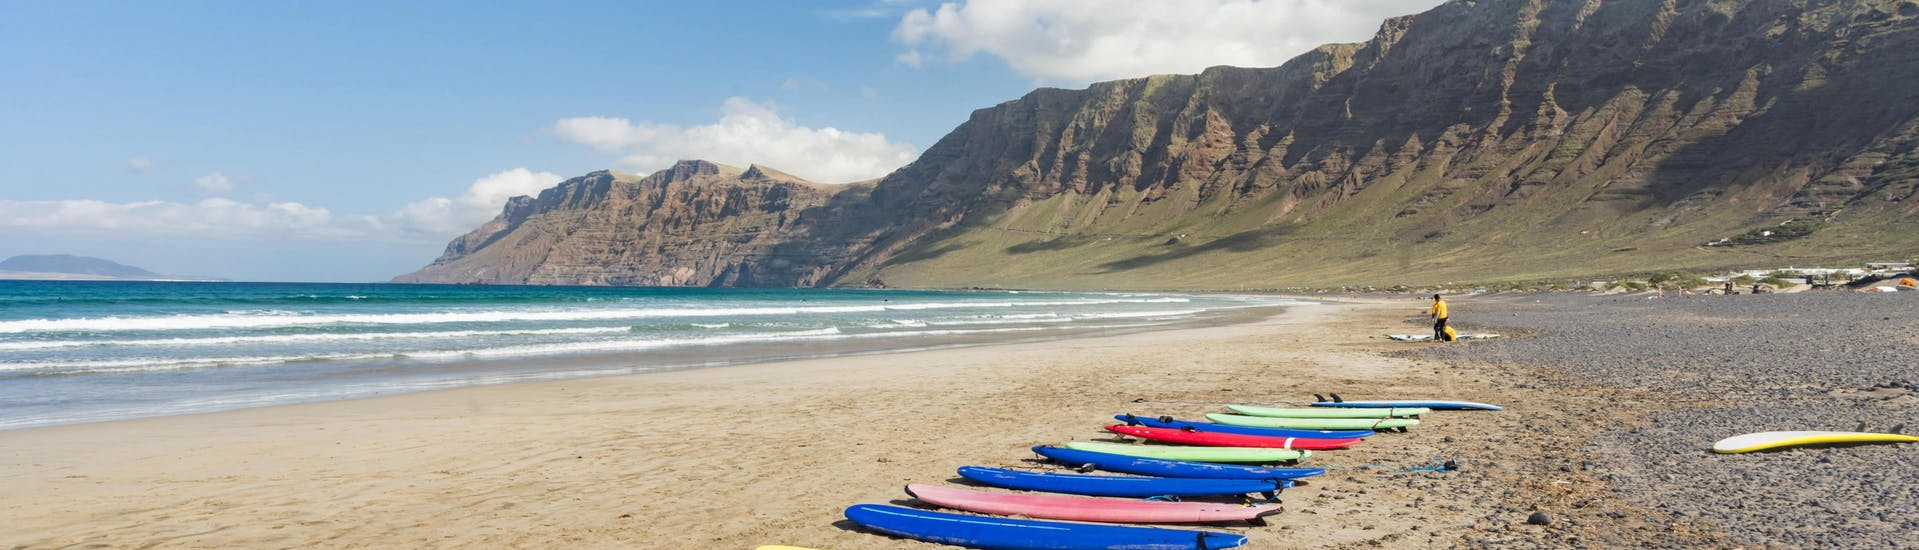 A set of surf boards is lined up on the beach Playa de Famara for people to go surfing in Lanzarote.